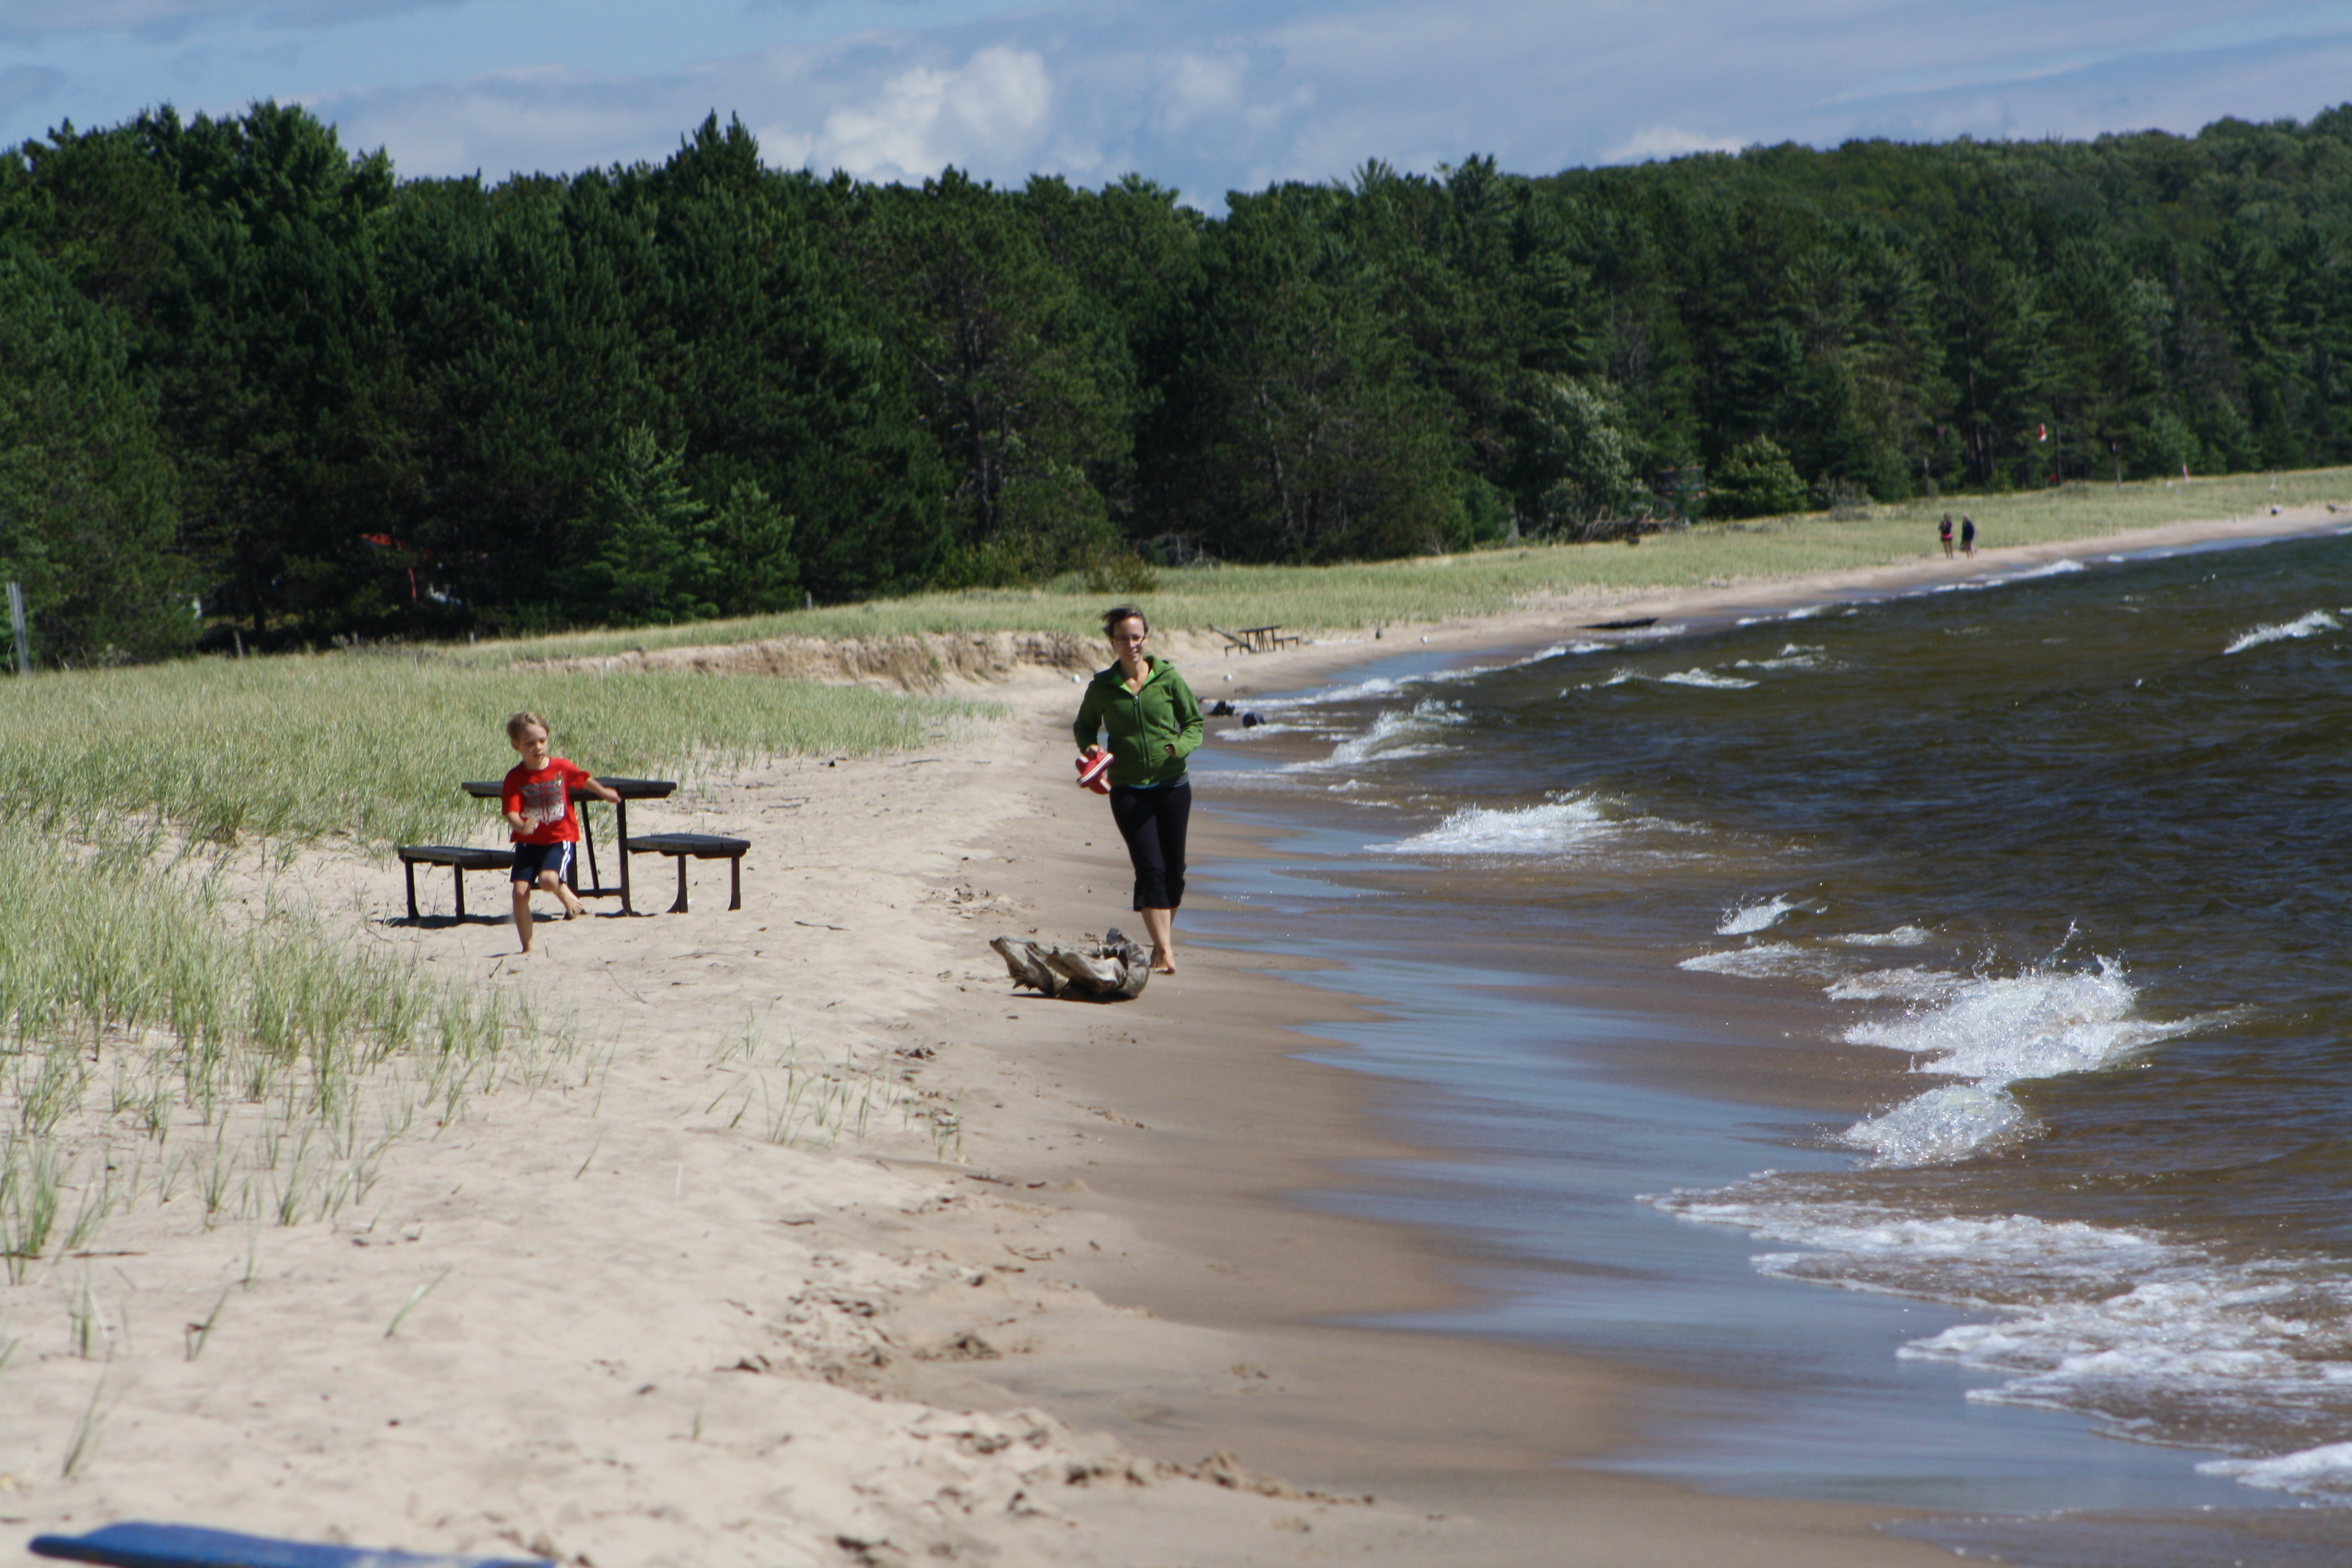 The Lake Superior shoreline also features tons of long, nearly empty beaches to explore. JIM BYERS PHOTO